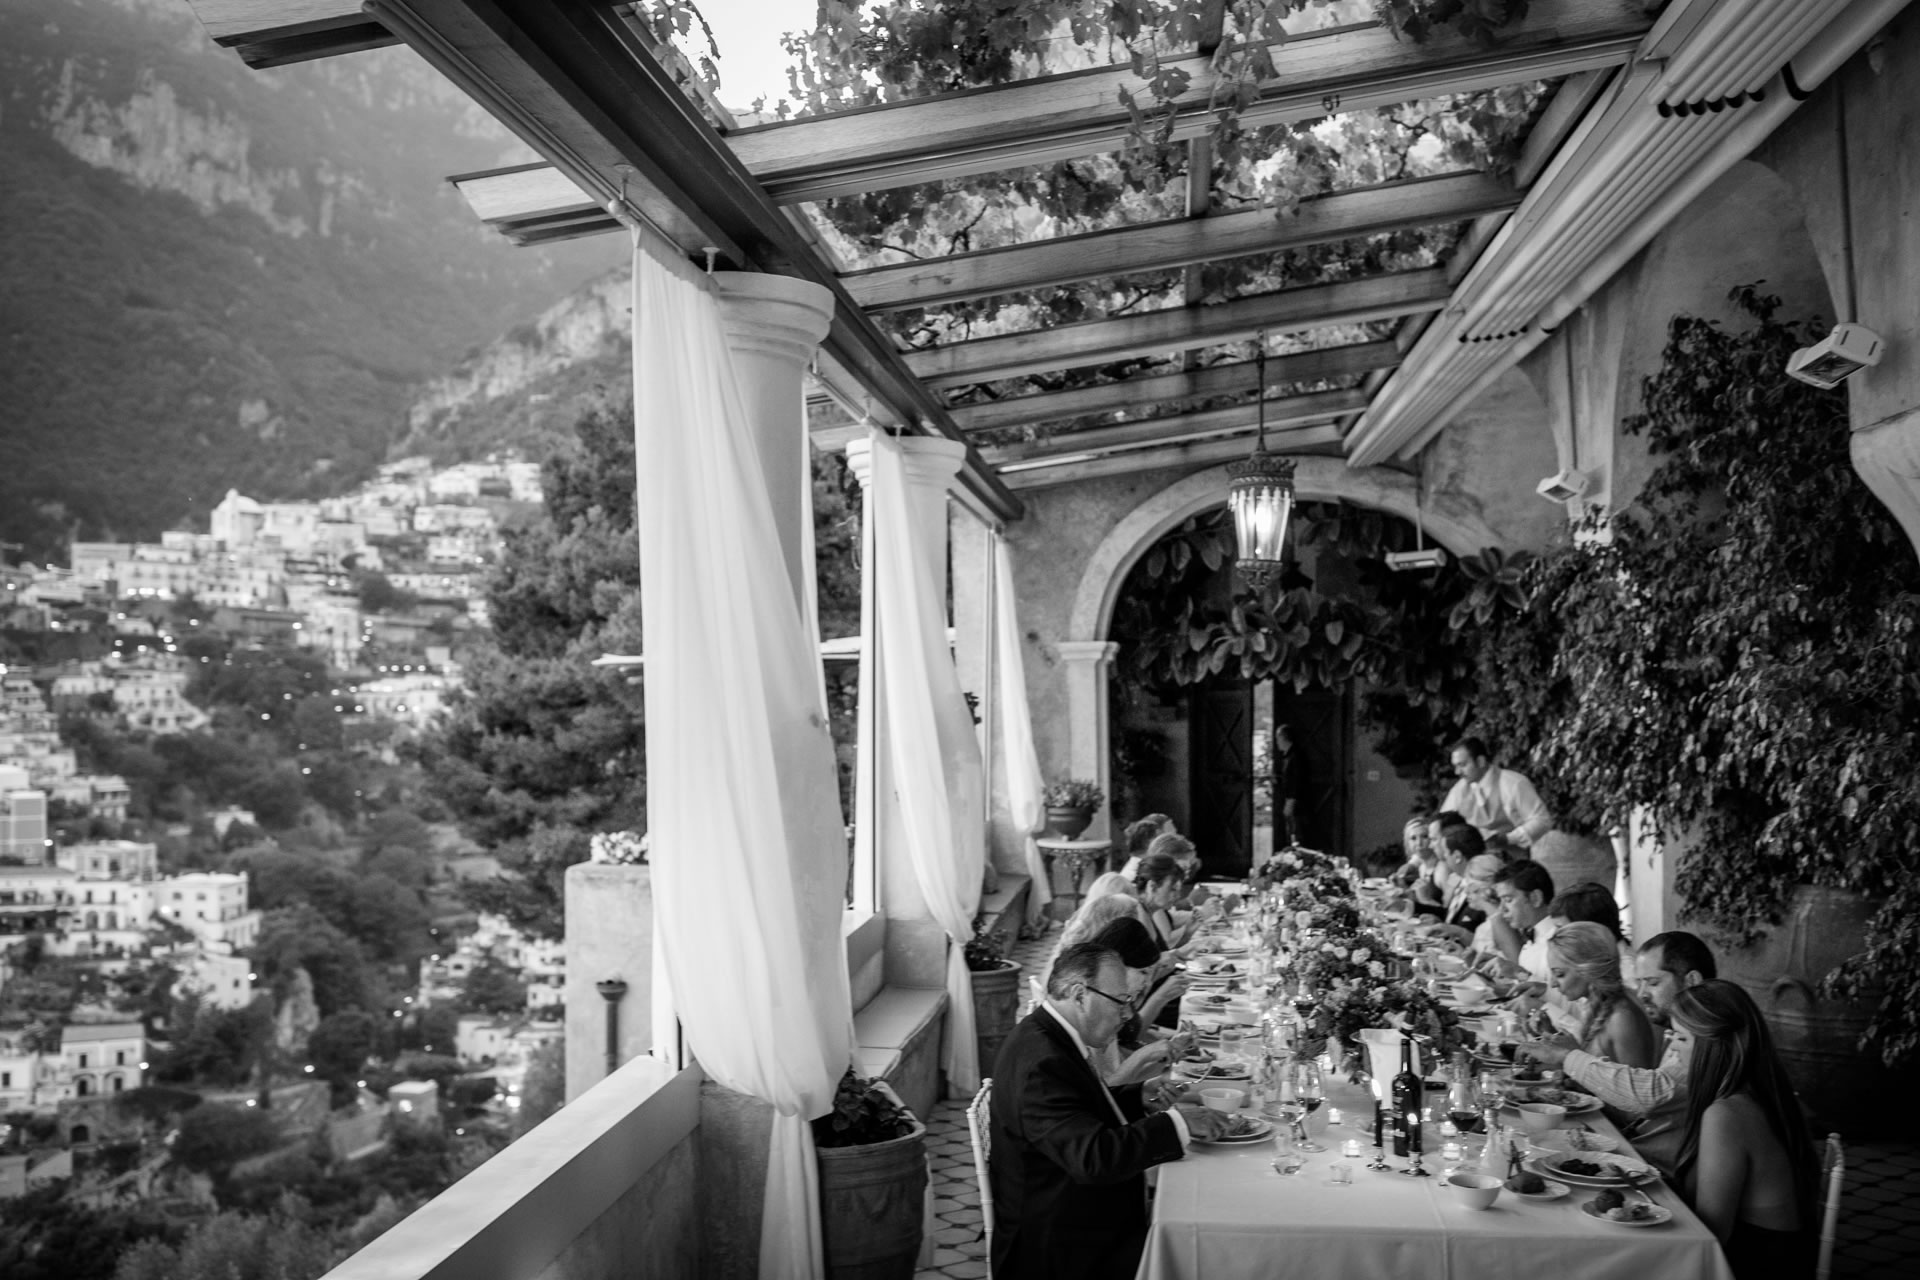 Invited - 57 :: Wedding in Positano. Sea and love :: Luxury wedding photography - 56 :: Invited - 57